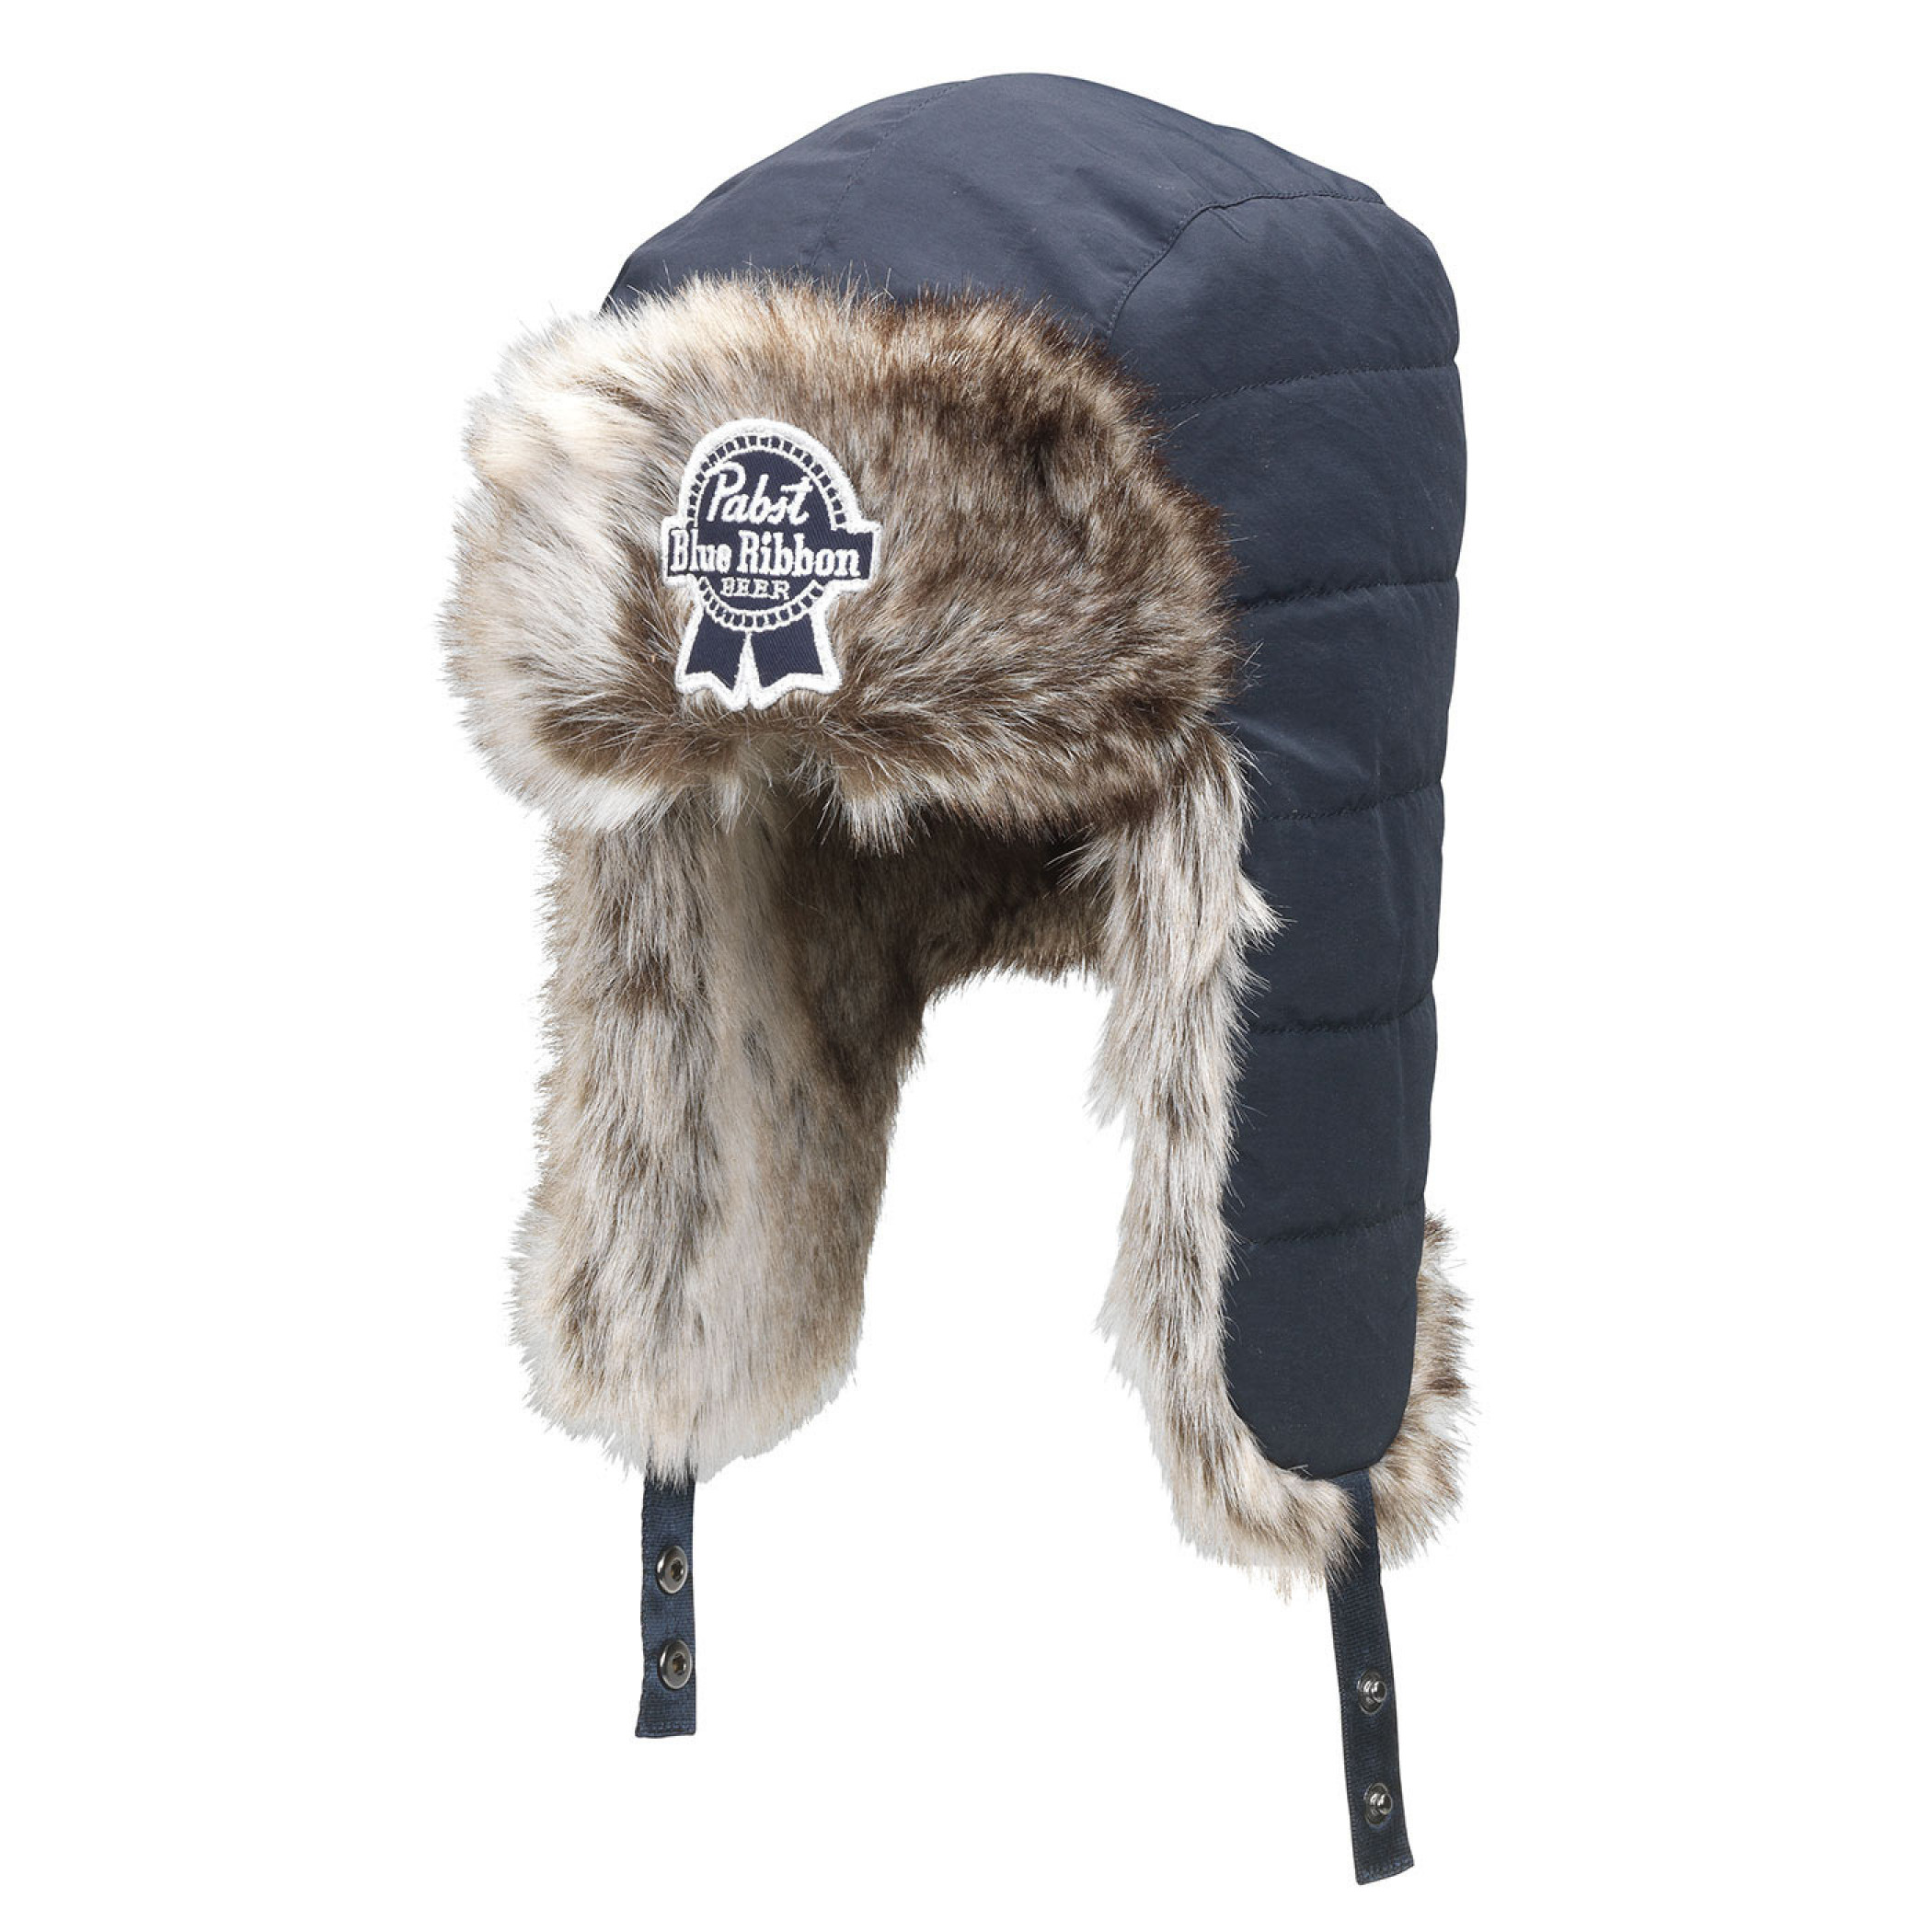 Pabst Blue Ribbon Beer Fur Lined Winter Hunting Hat